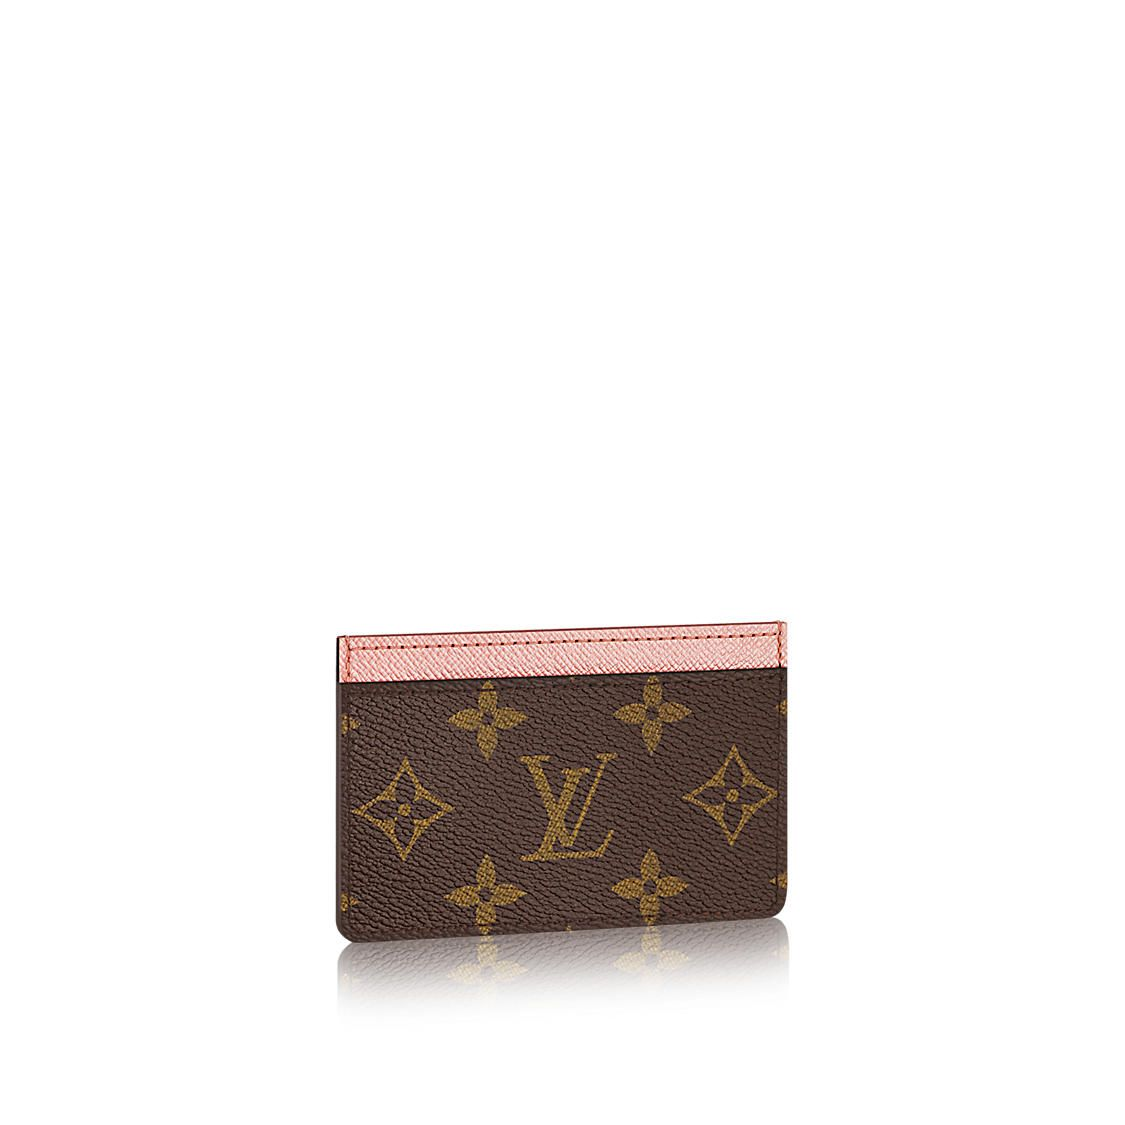 Card Holder Monogram Canvas - Small Leather Goods | LOUIS VUITTON ...